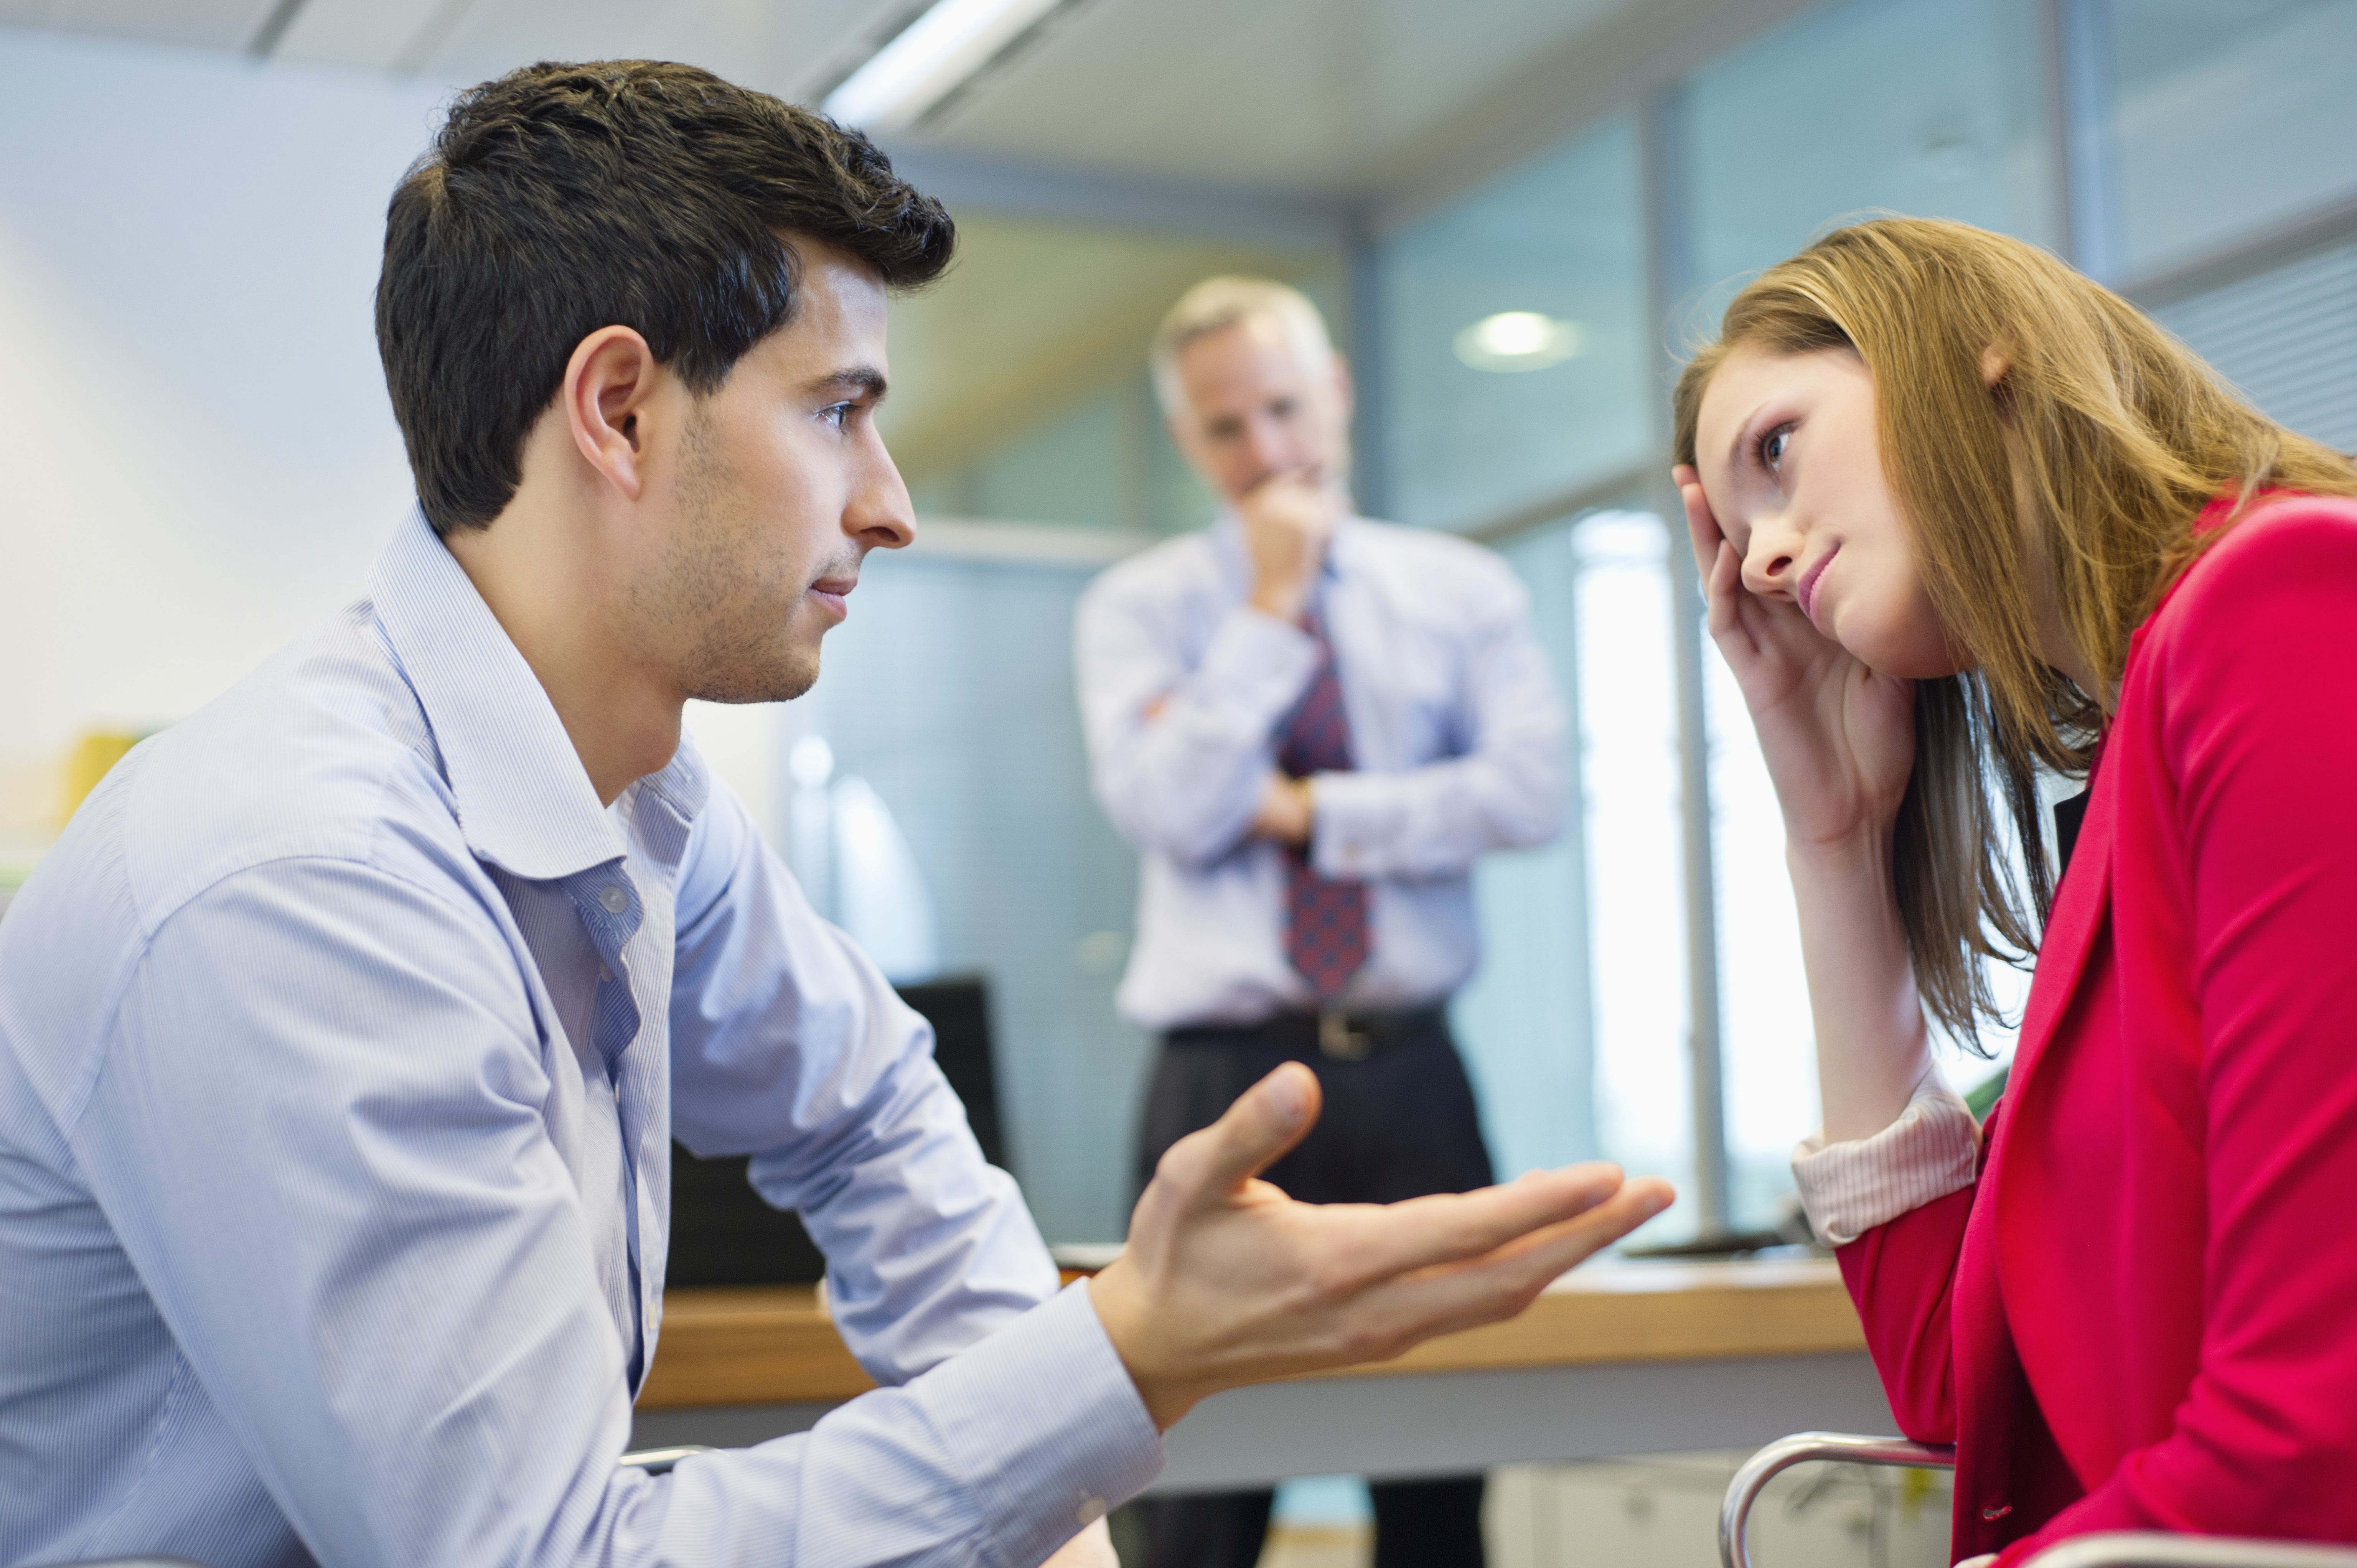 sample letters of reprimand for employee performance